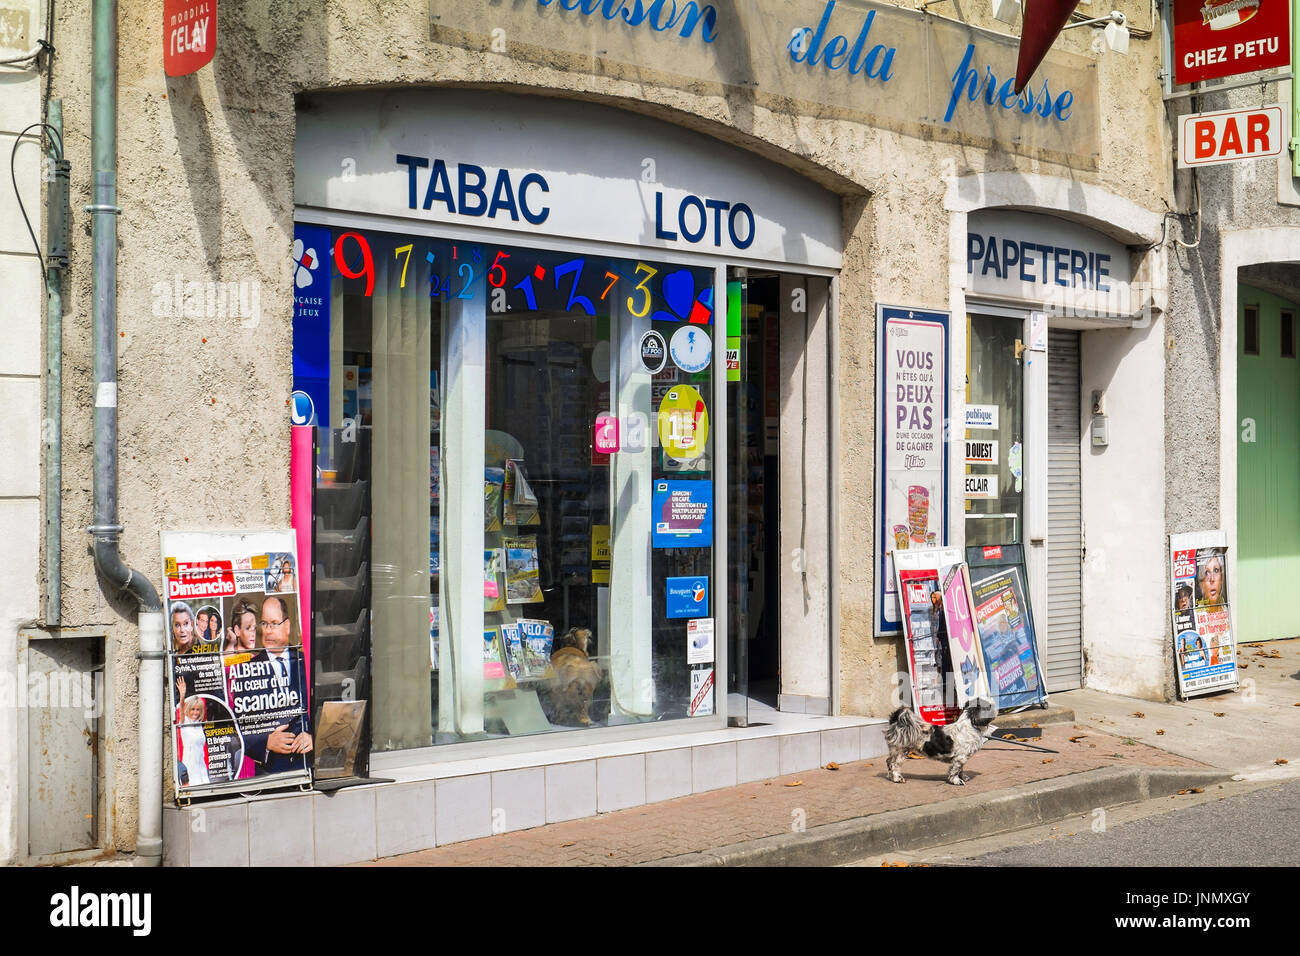 Tabac France Stock Photos & Tabac France Stock Images - Alamy